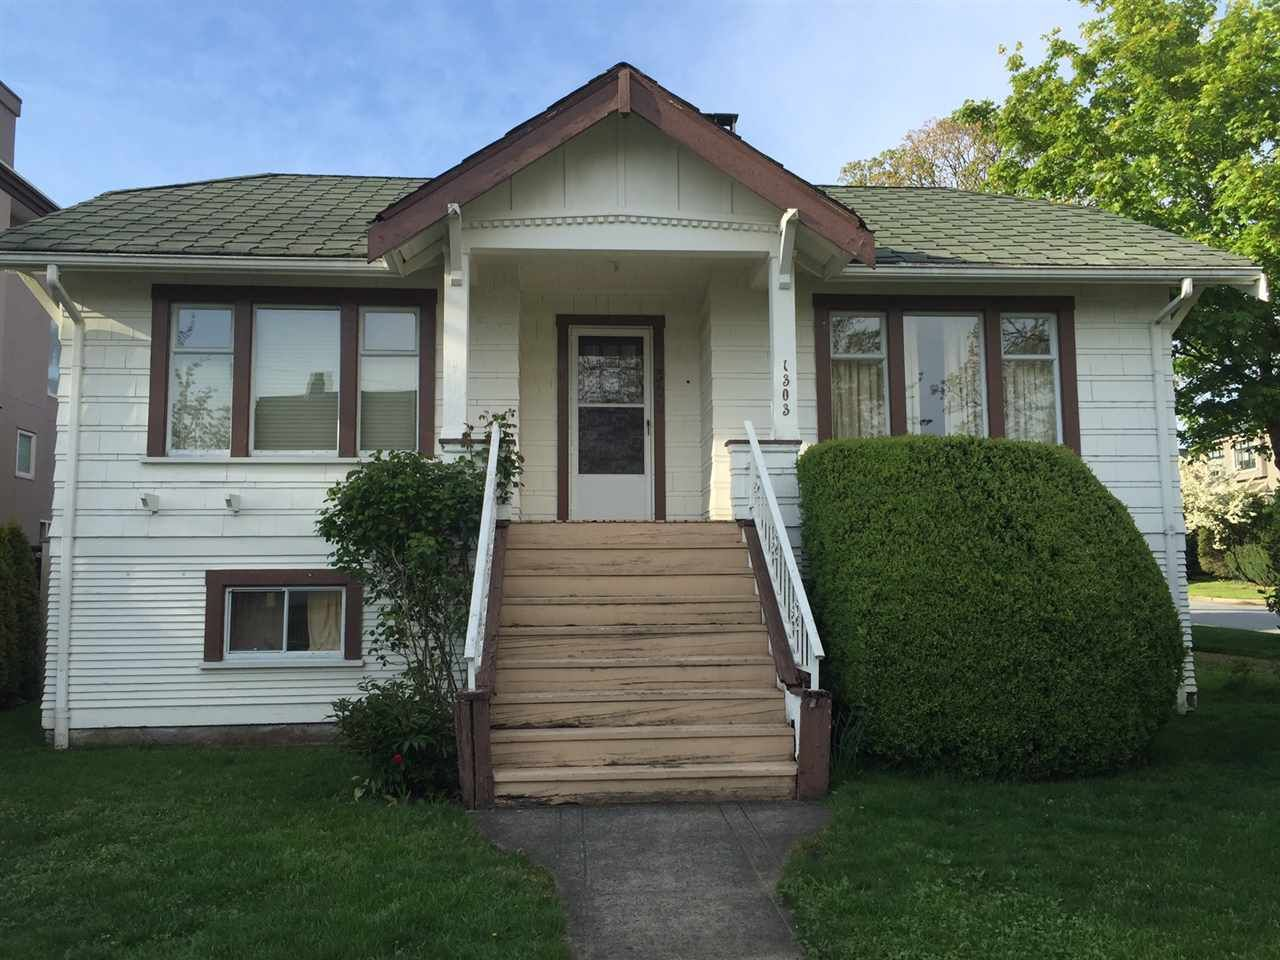 Main Photo: 1303 PARK DRIVE in Vancouver: Marpole House for sale (Vancouver West)  : MLS®# R2057840